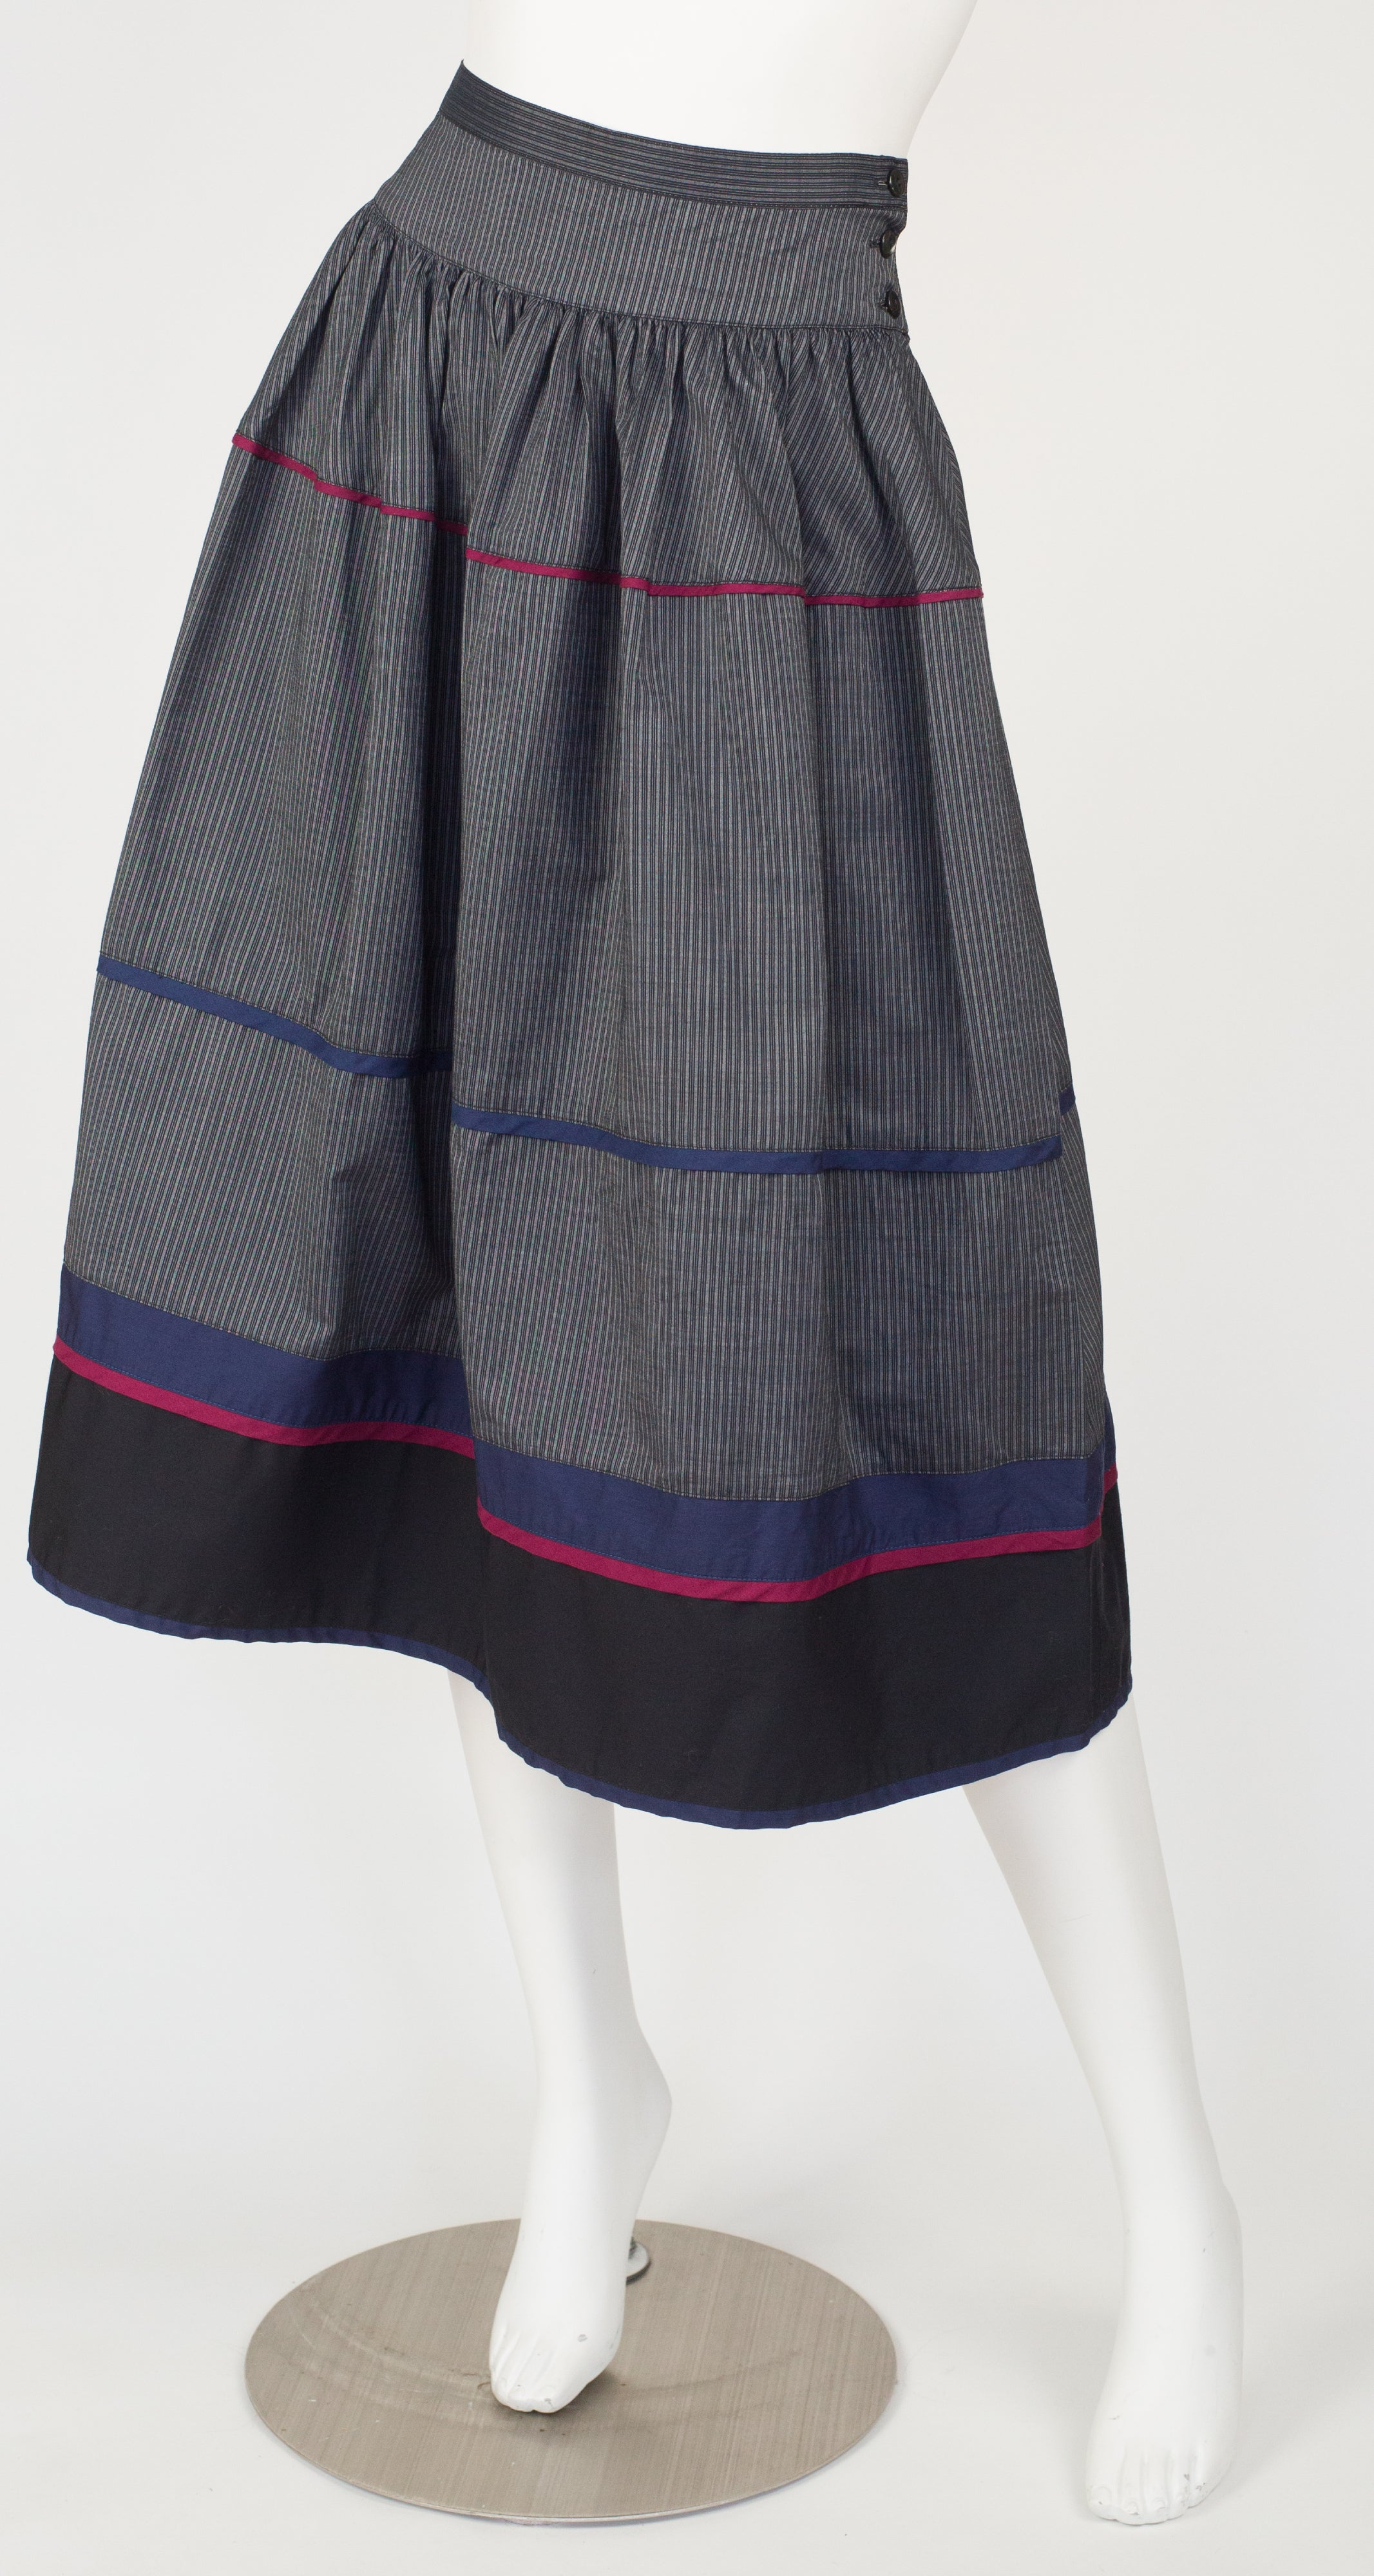 1982 S/S Documented Striped Cotton Skirt